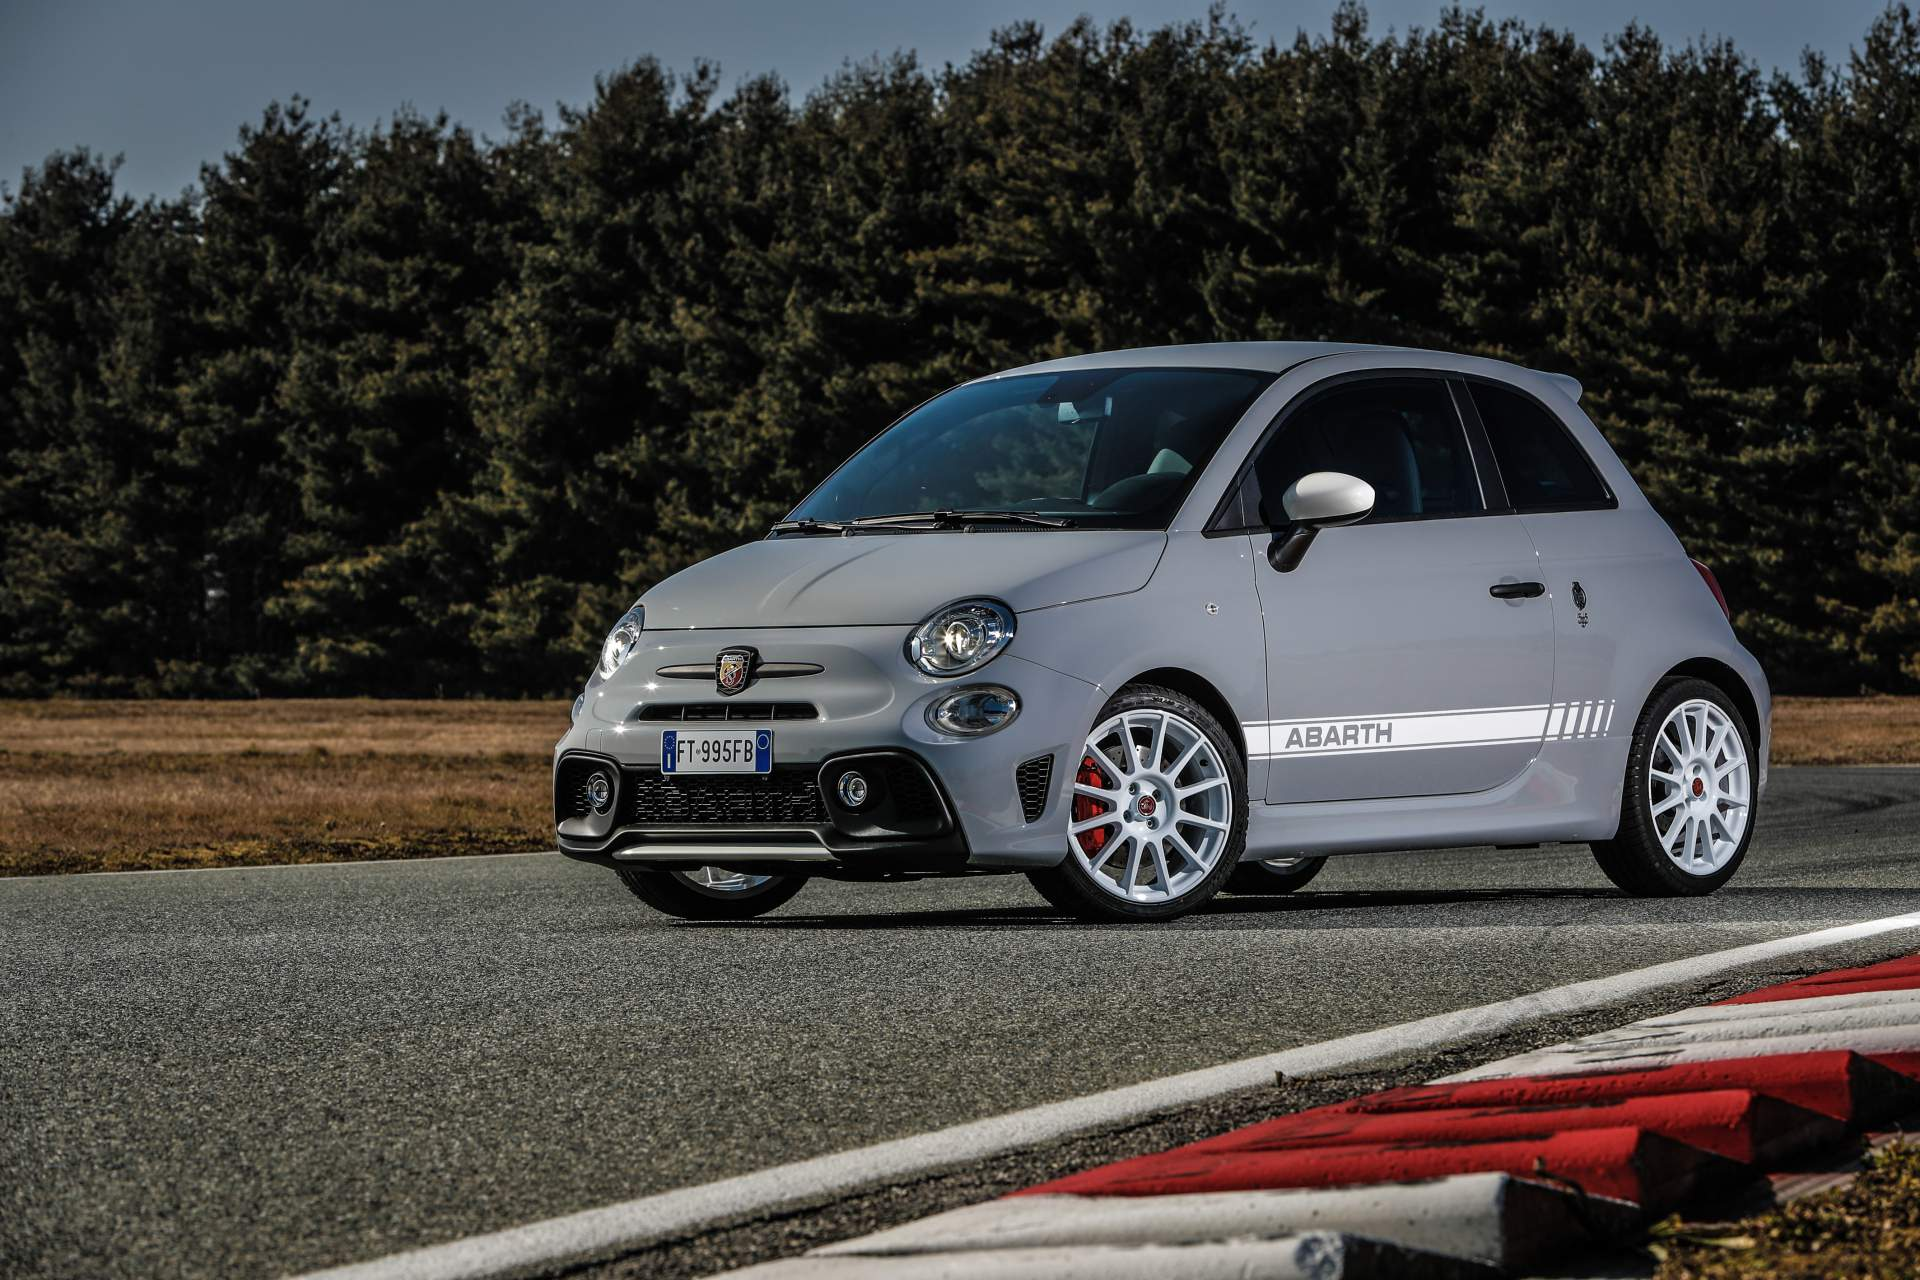 Abarth 595 esseesse Reveals With Awesome Grey Paint and ...